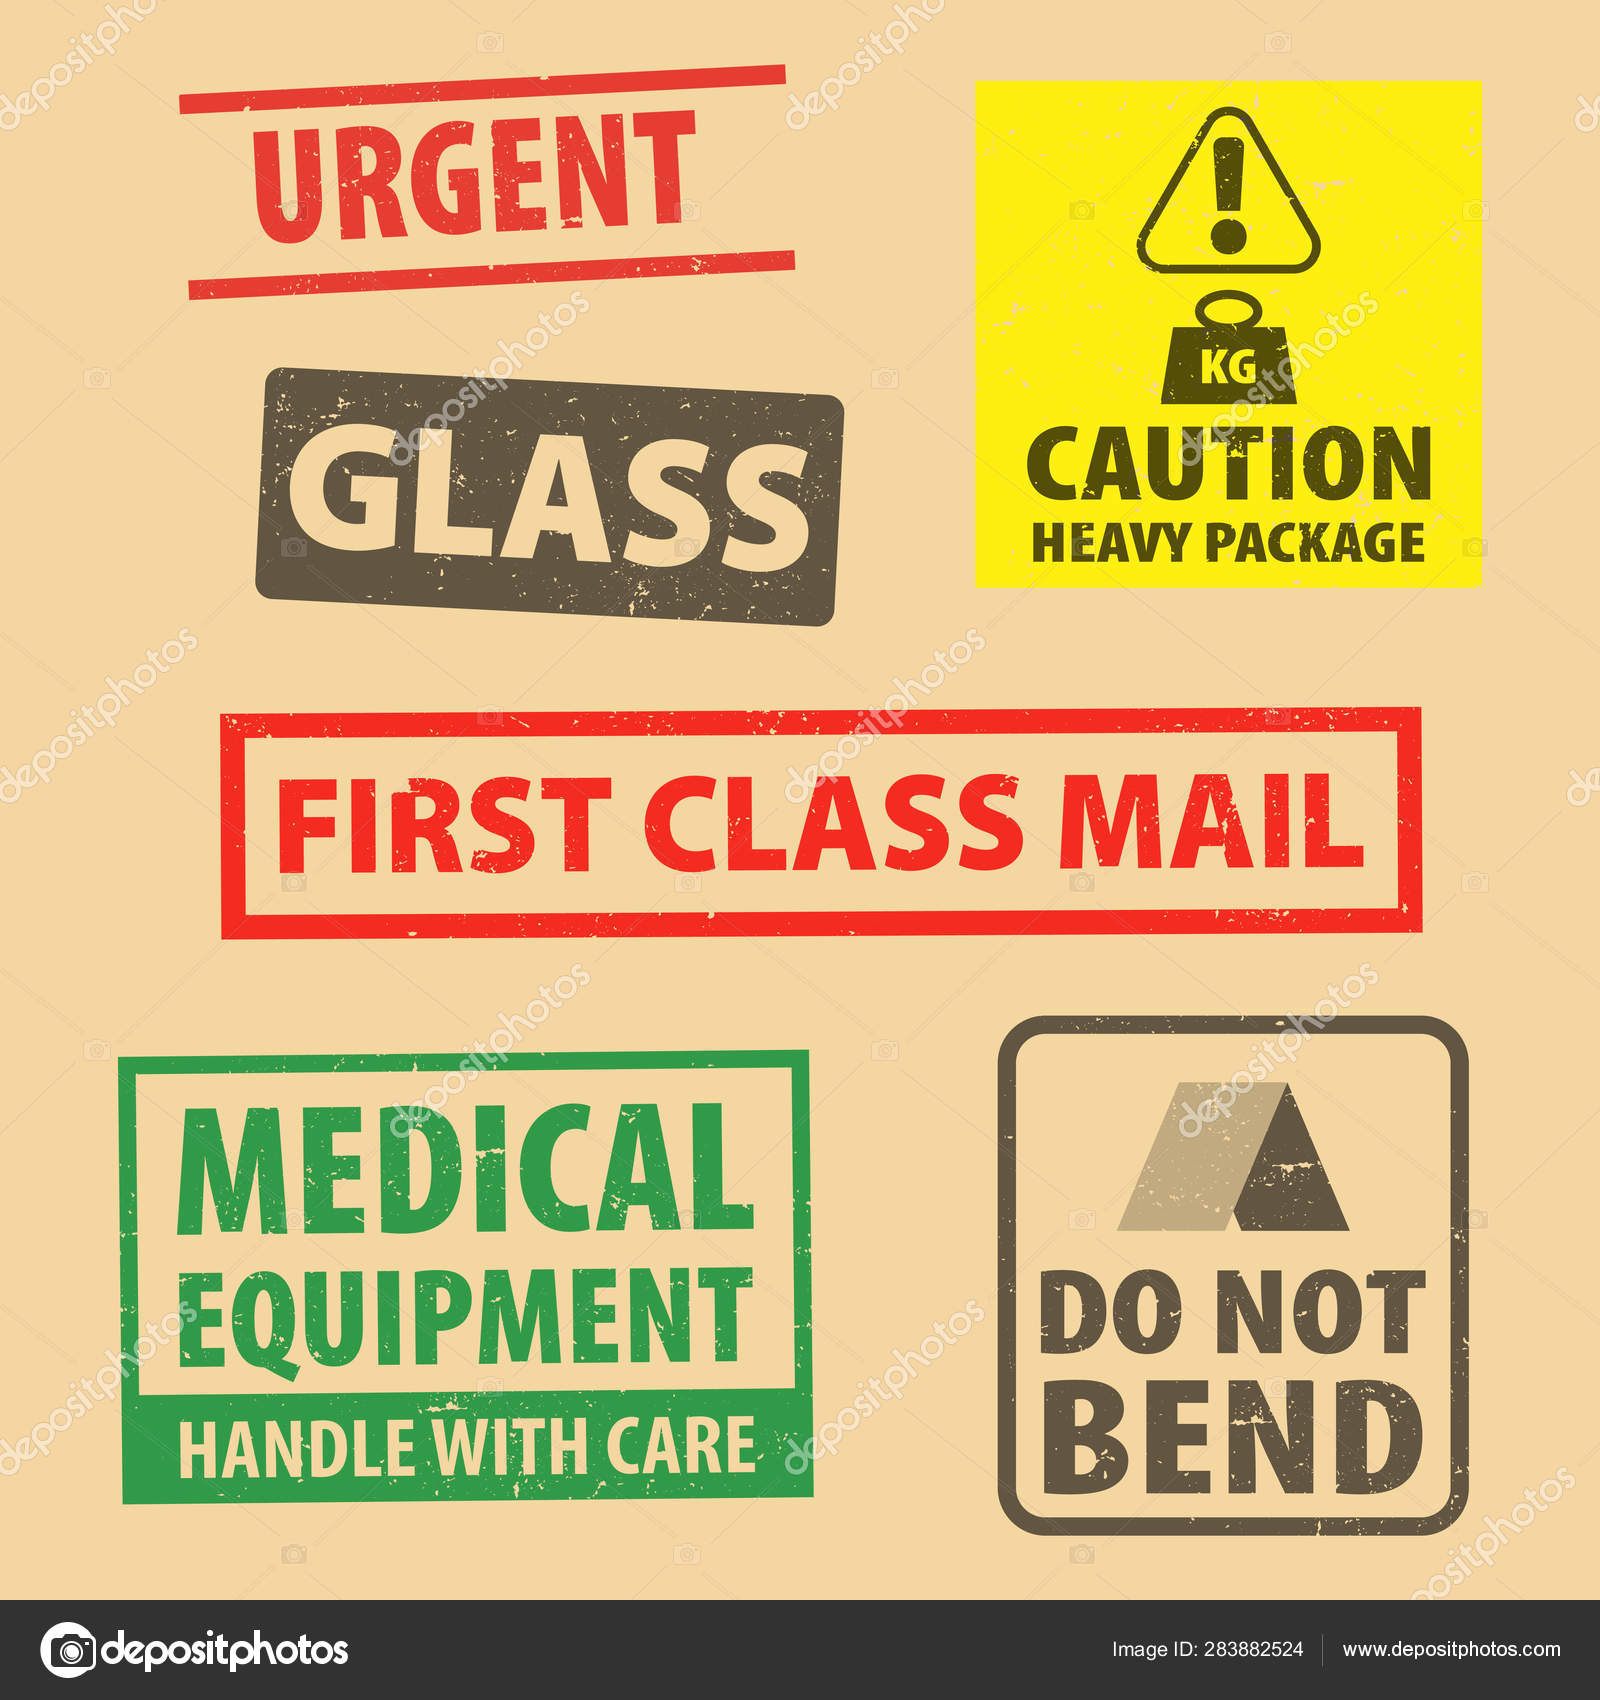 set of fragile sticker caution heavy package and do not bend icon packaging symbols sign fragile set of fragile sticker caution heavy package and do not bend icon packaging symbols sign fragile